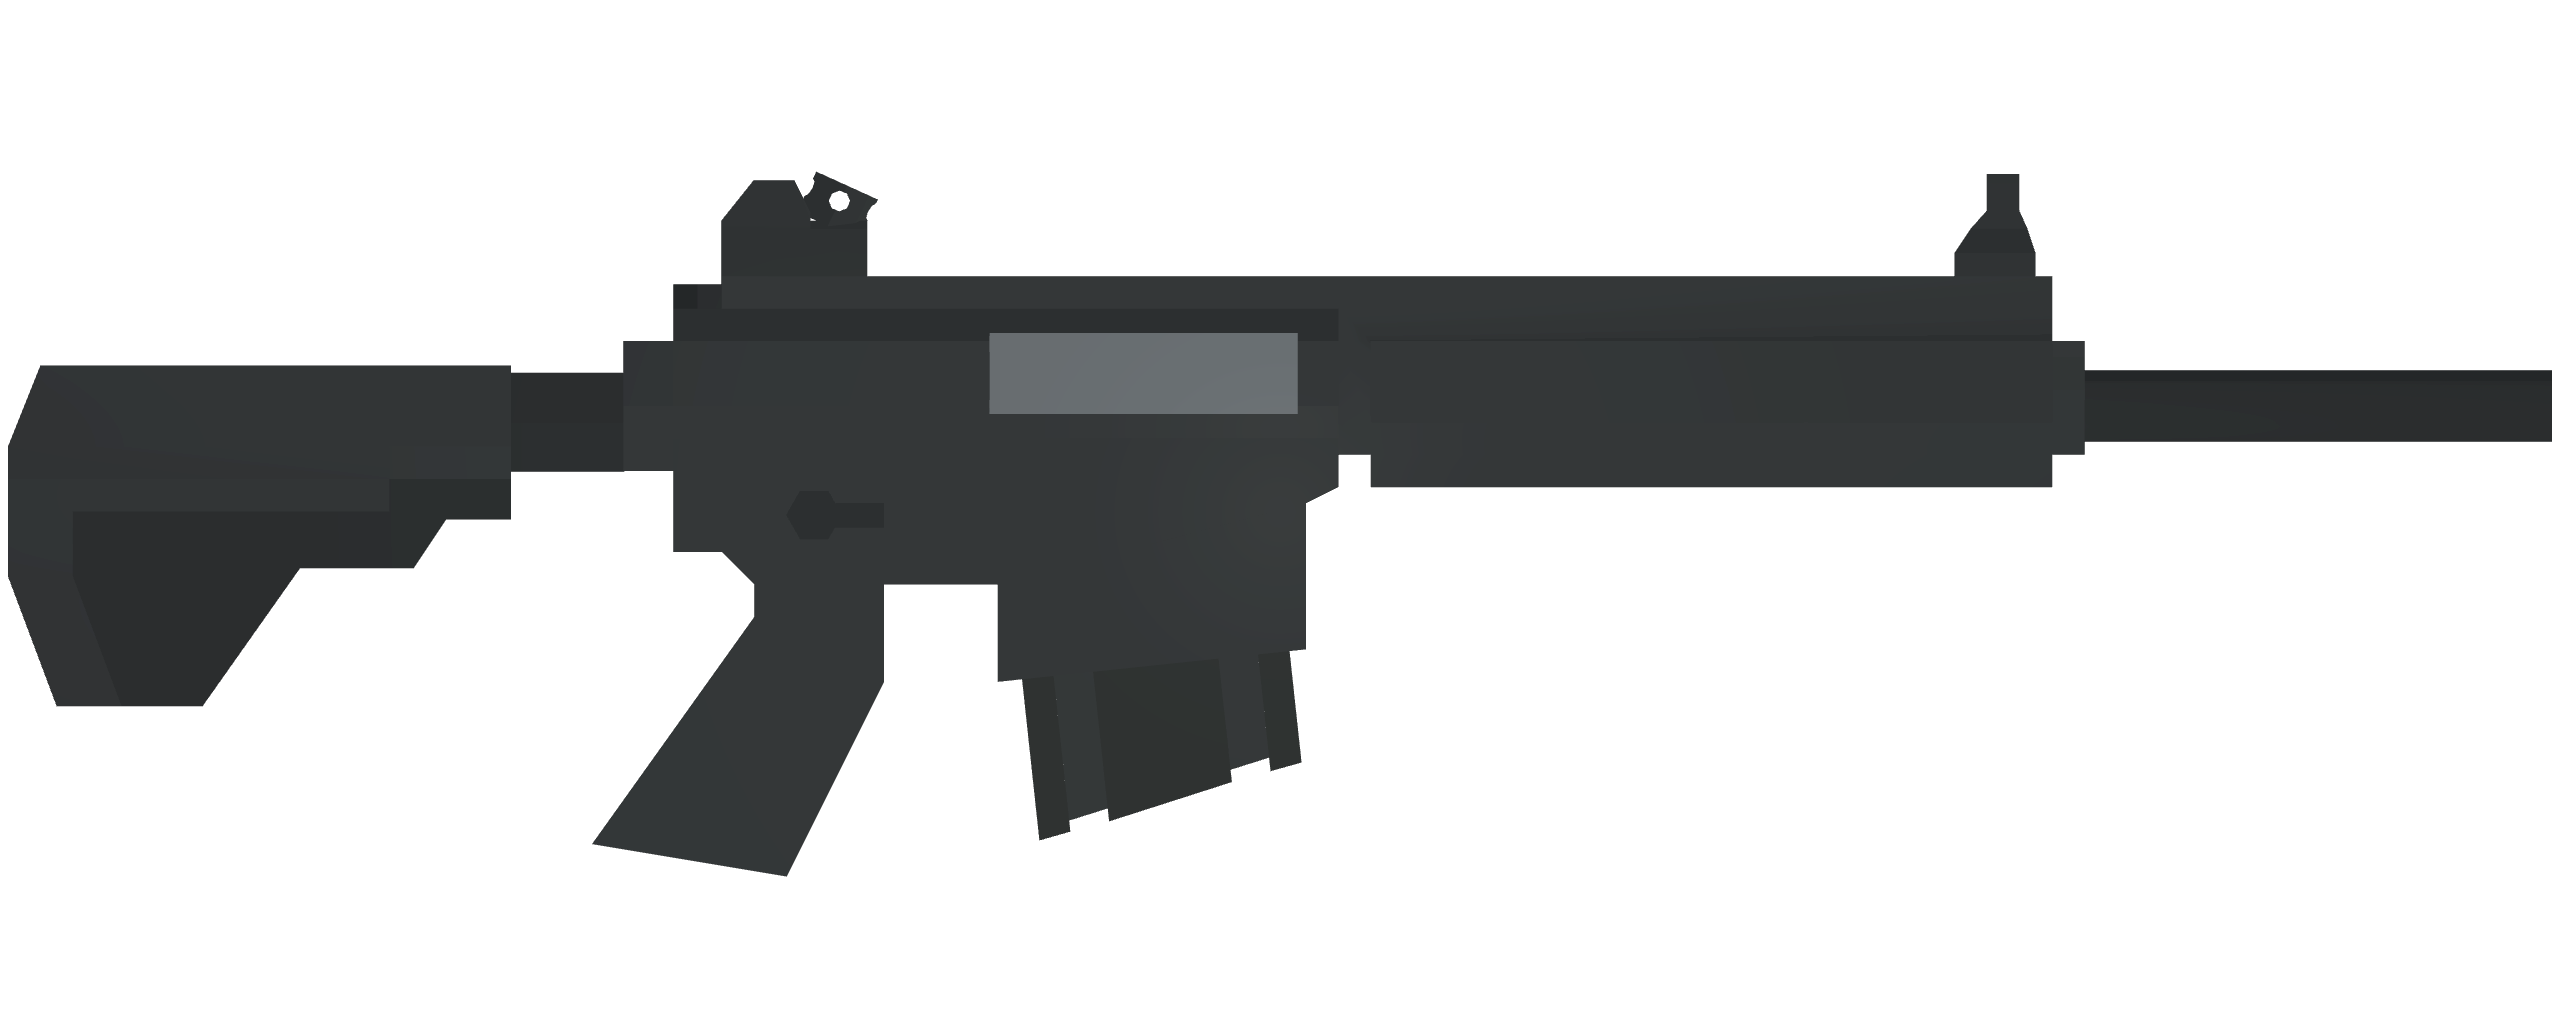 Unturned - All Weapons ID's for Uncreated Warfare Mods - Neutral Weapons - 48C6E4C